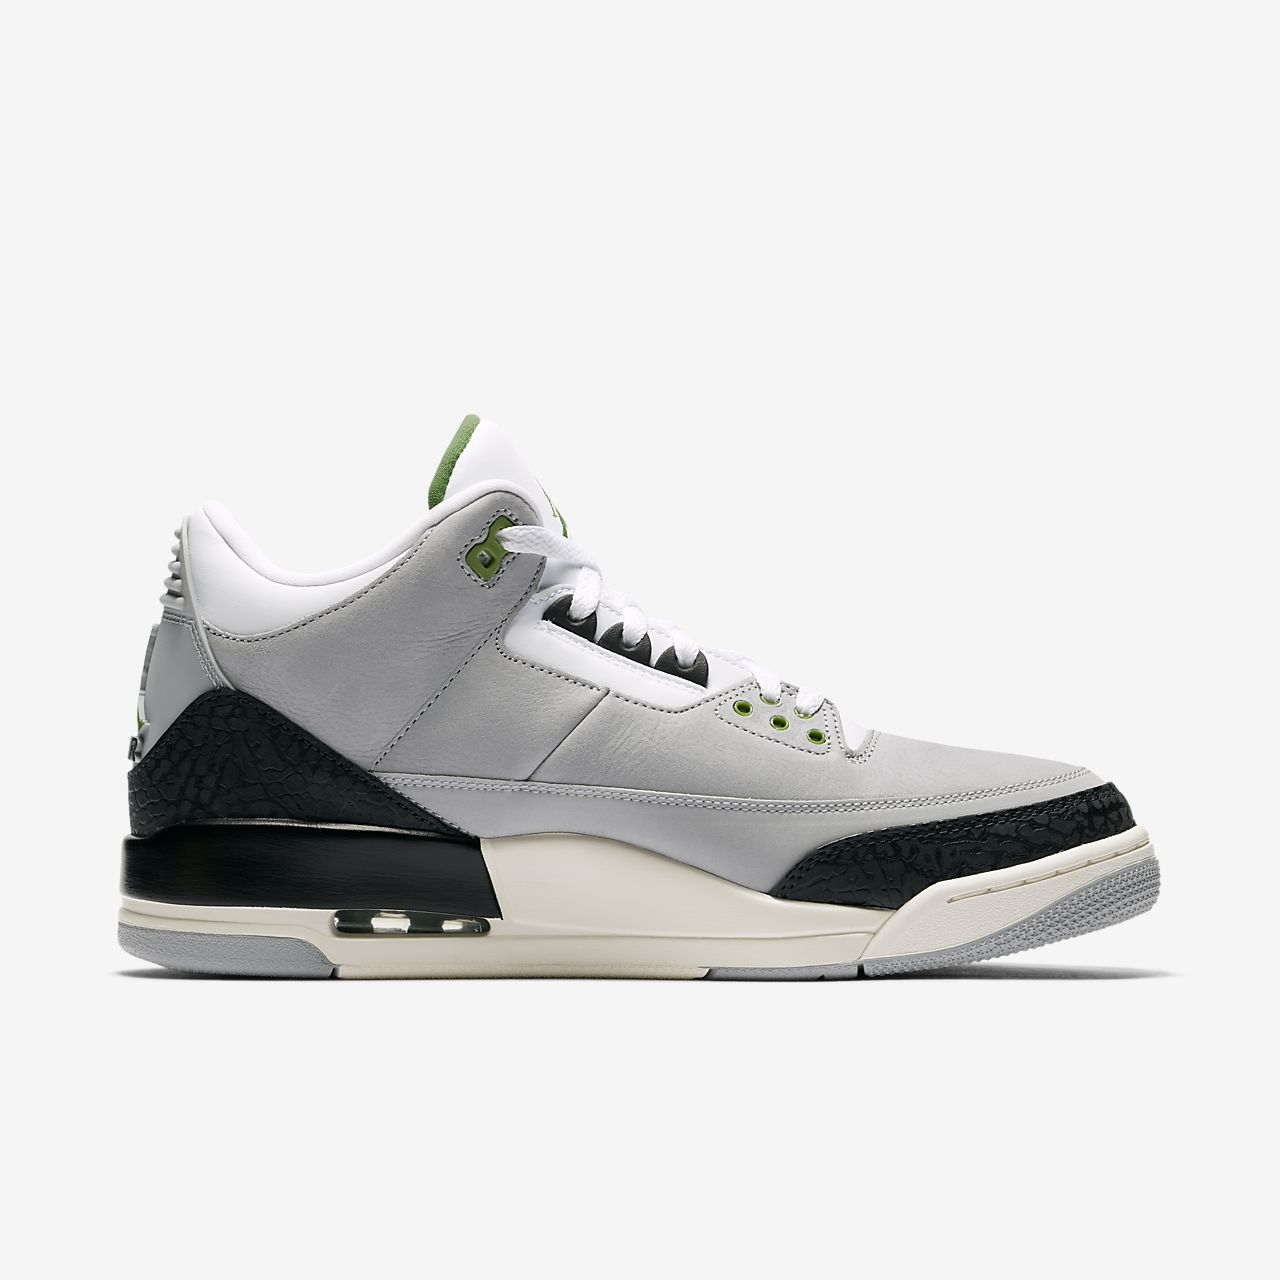 ccf1bbbc9684 Air Jordan 3 Retro Men s Shoe. Nike.com GB